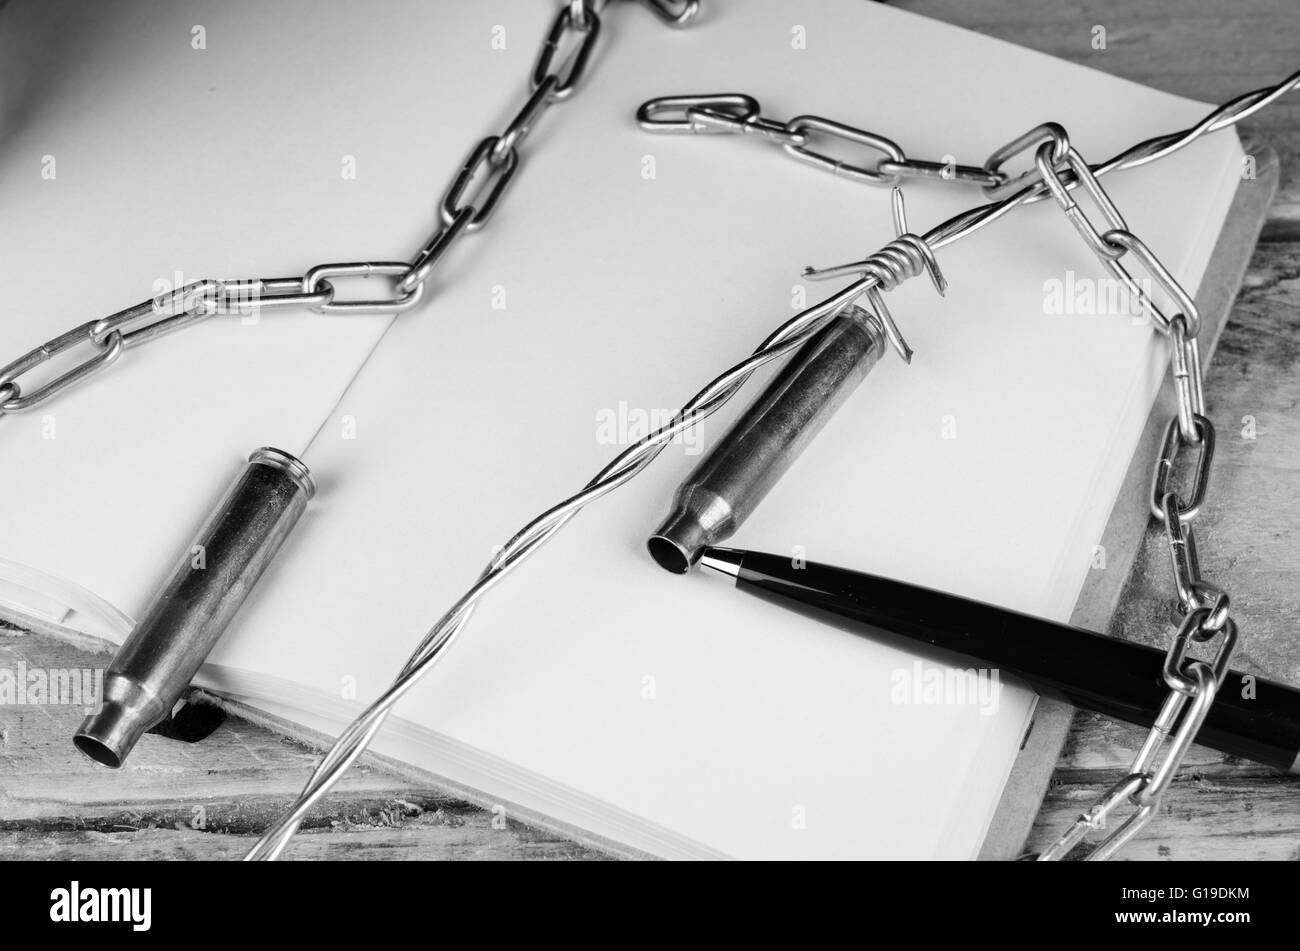 Bullets and barbed wire against pen and notebook, a press freedom ...